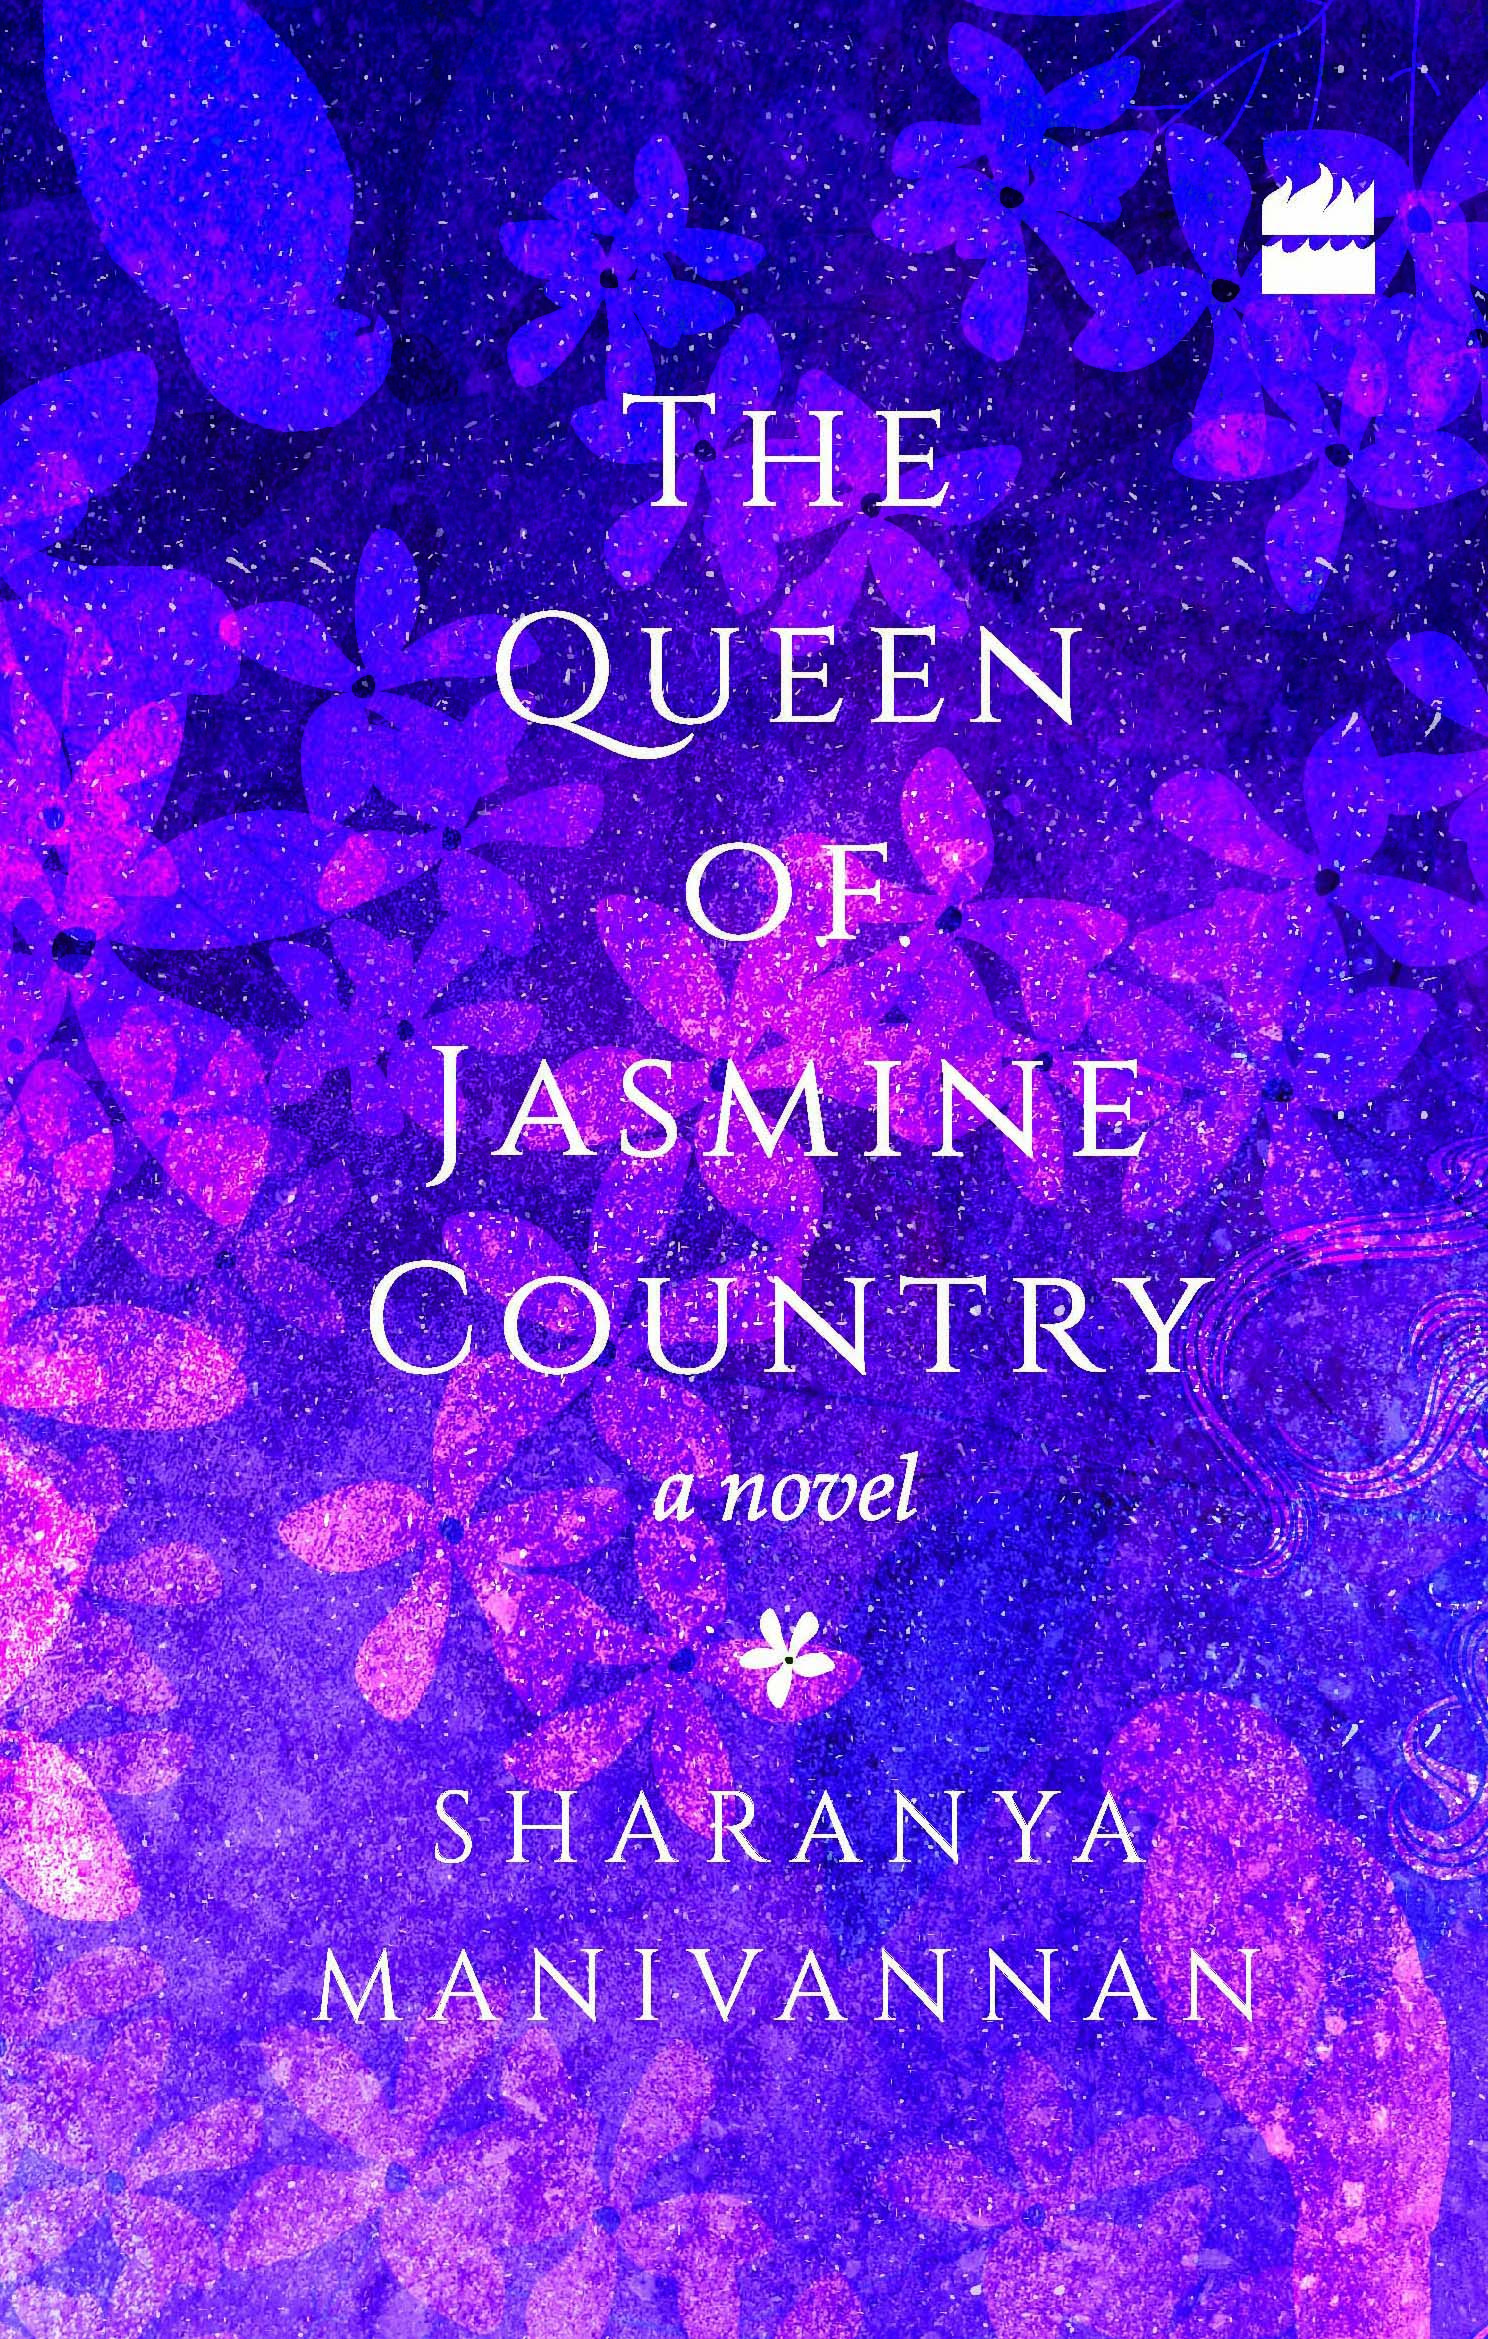 The Queen of Jasmine Country_Cover Spread